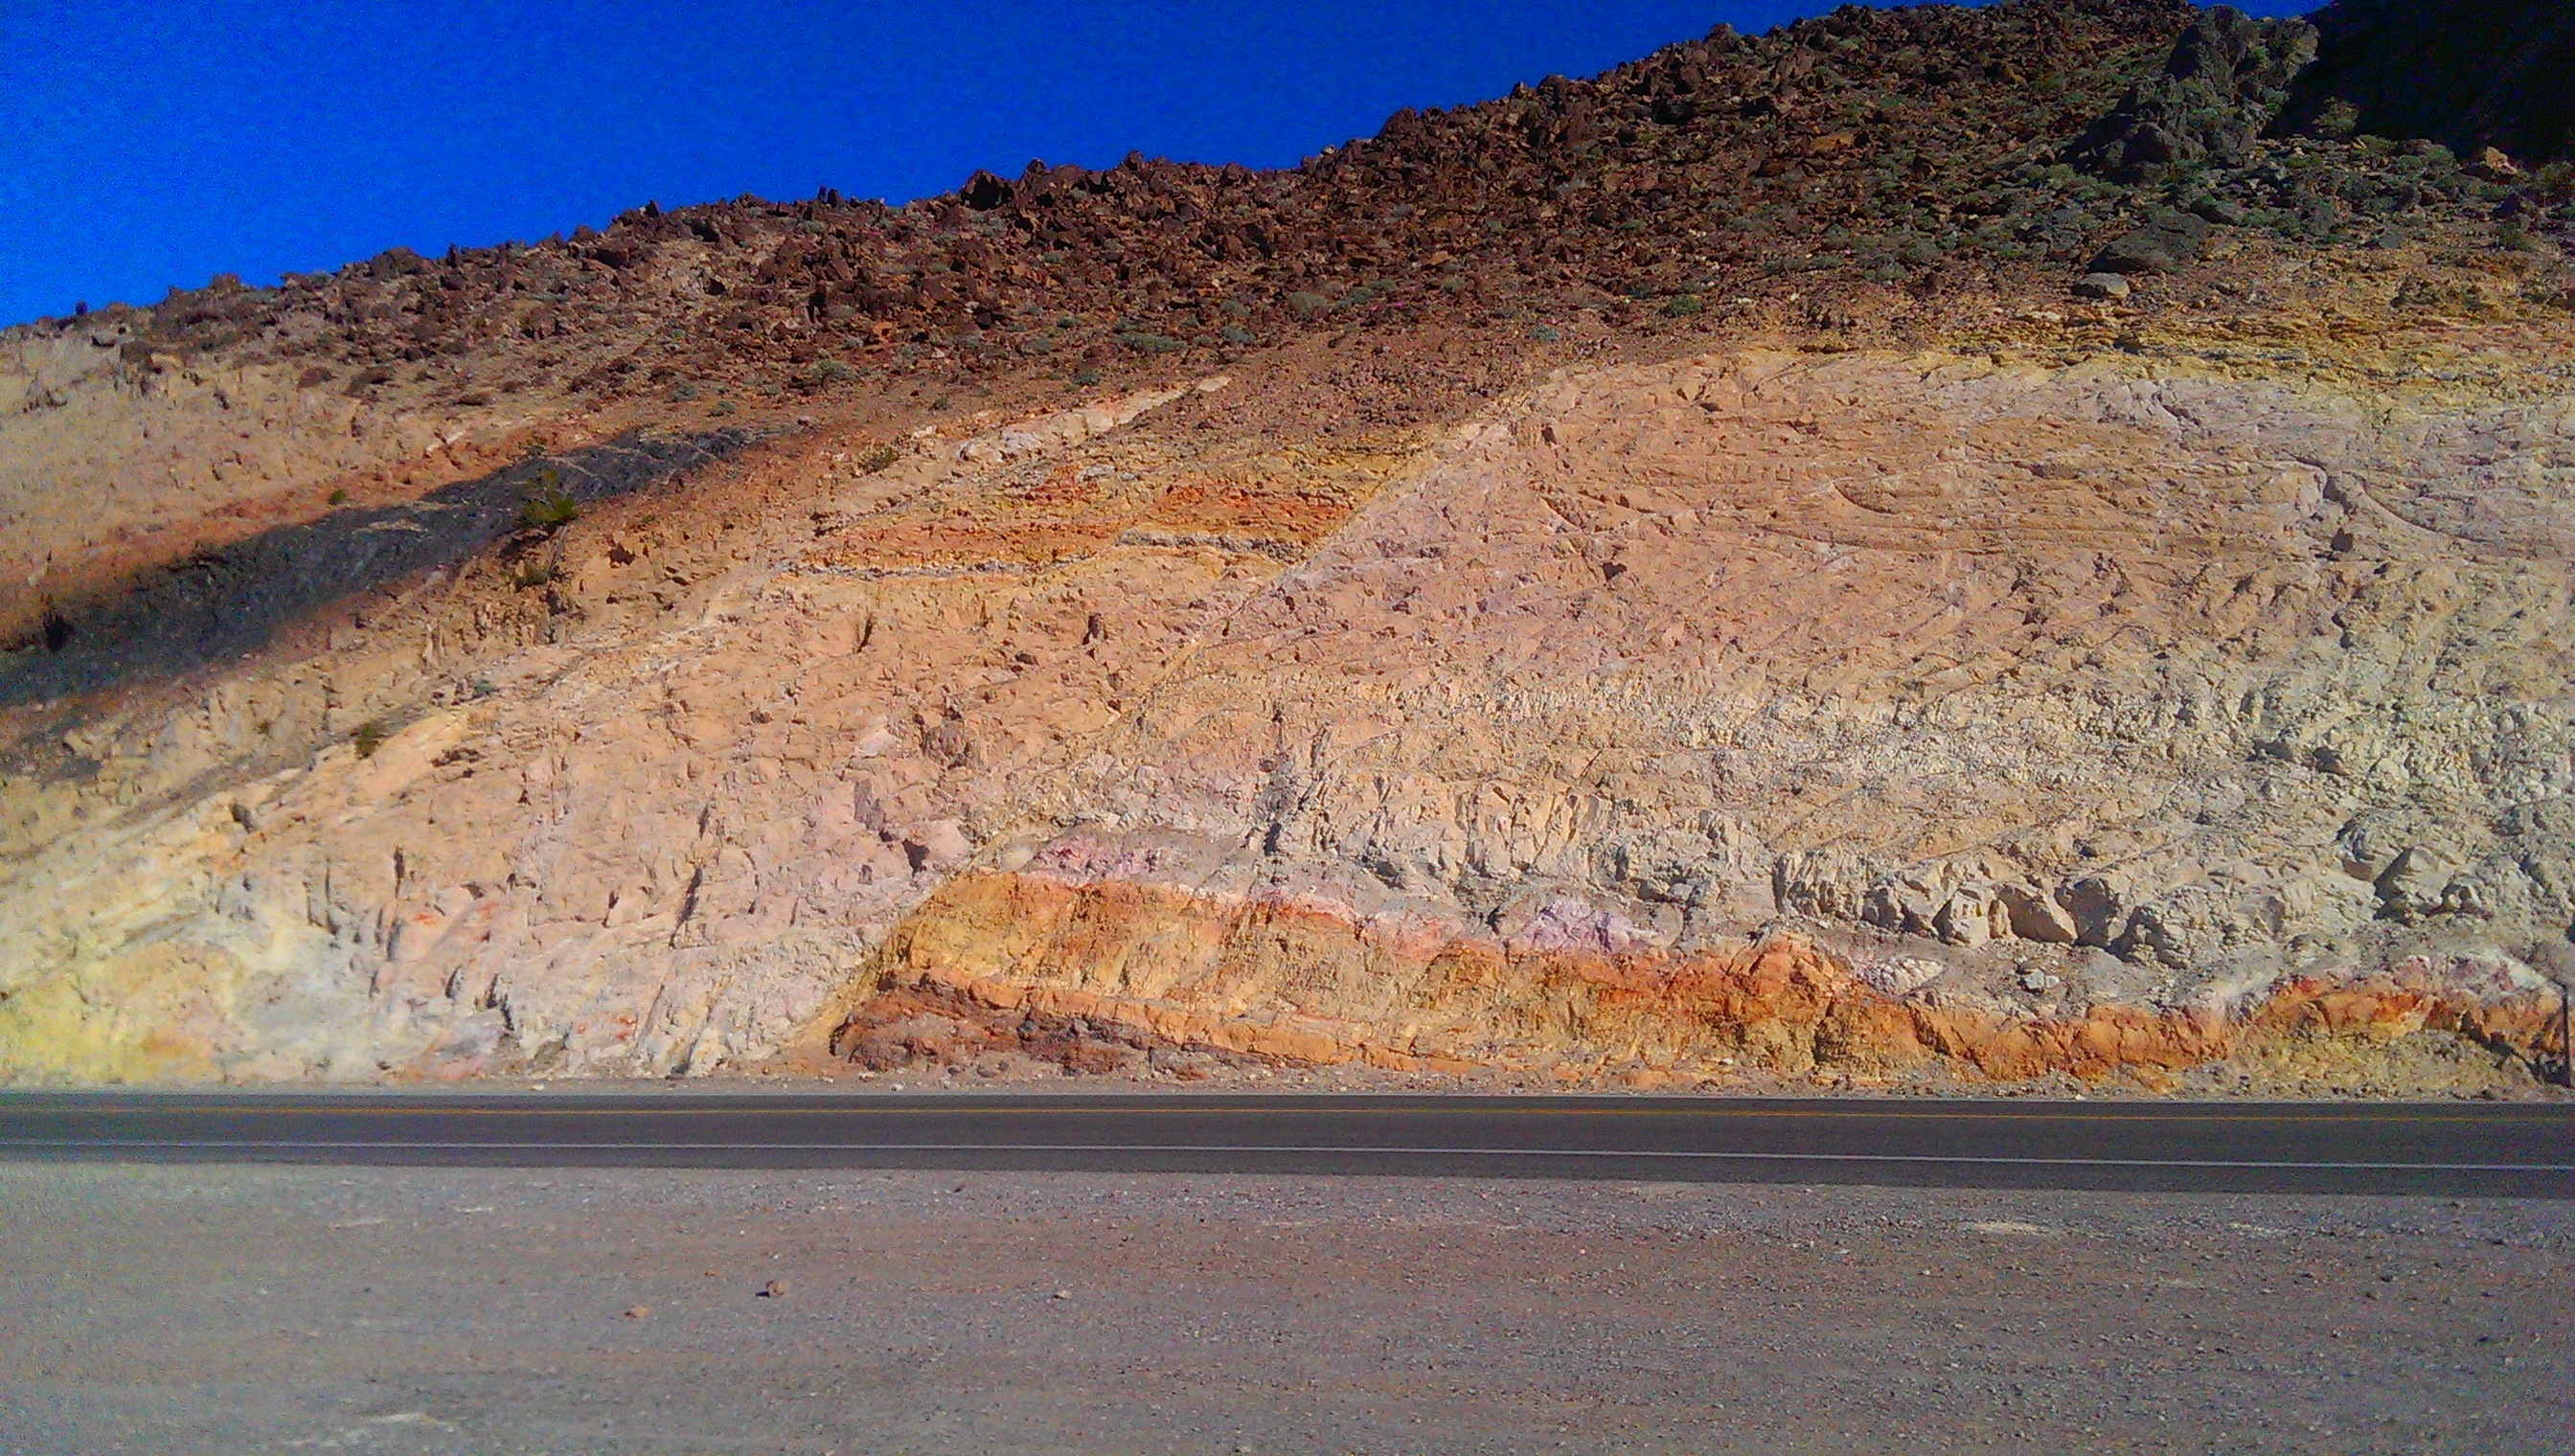 A geologic history of the Western US